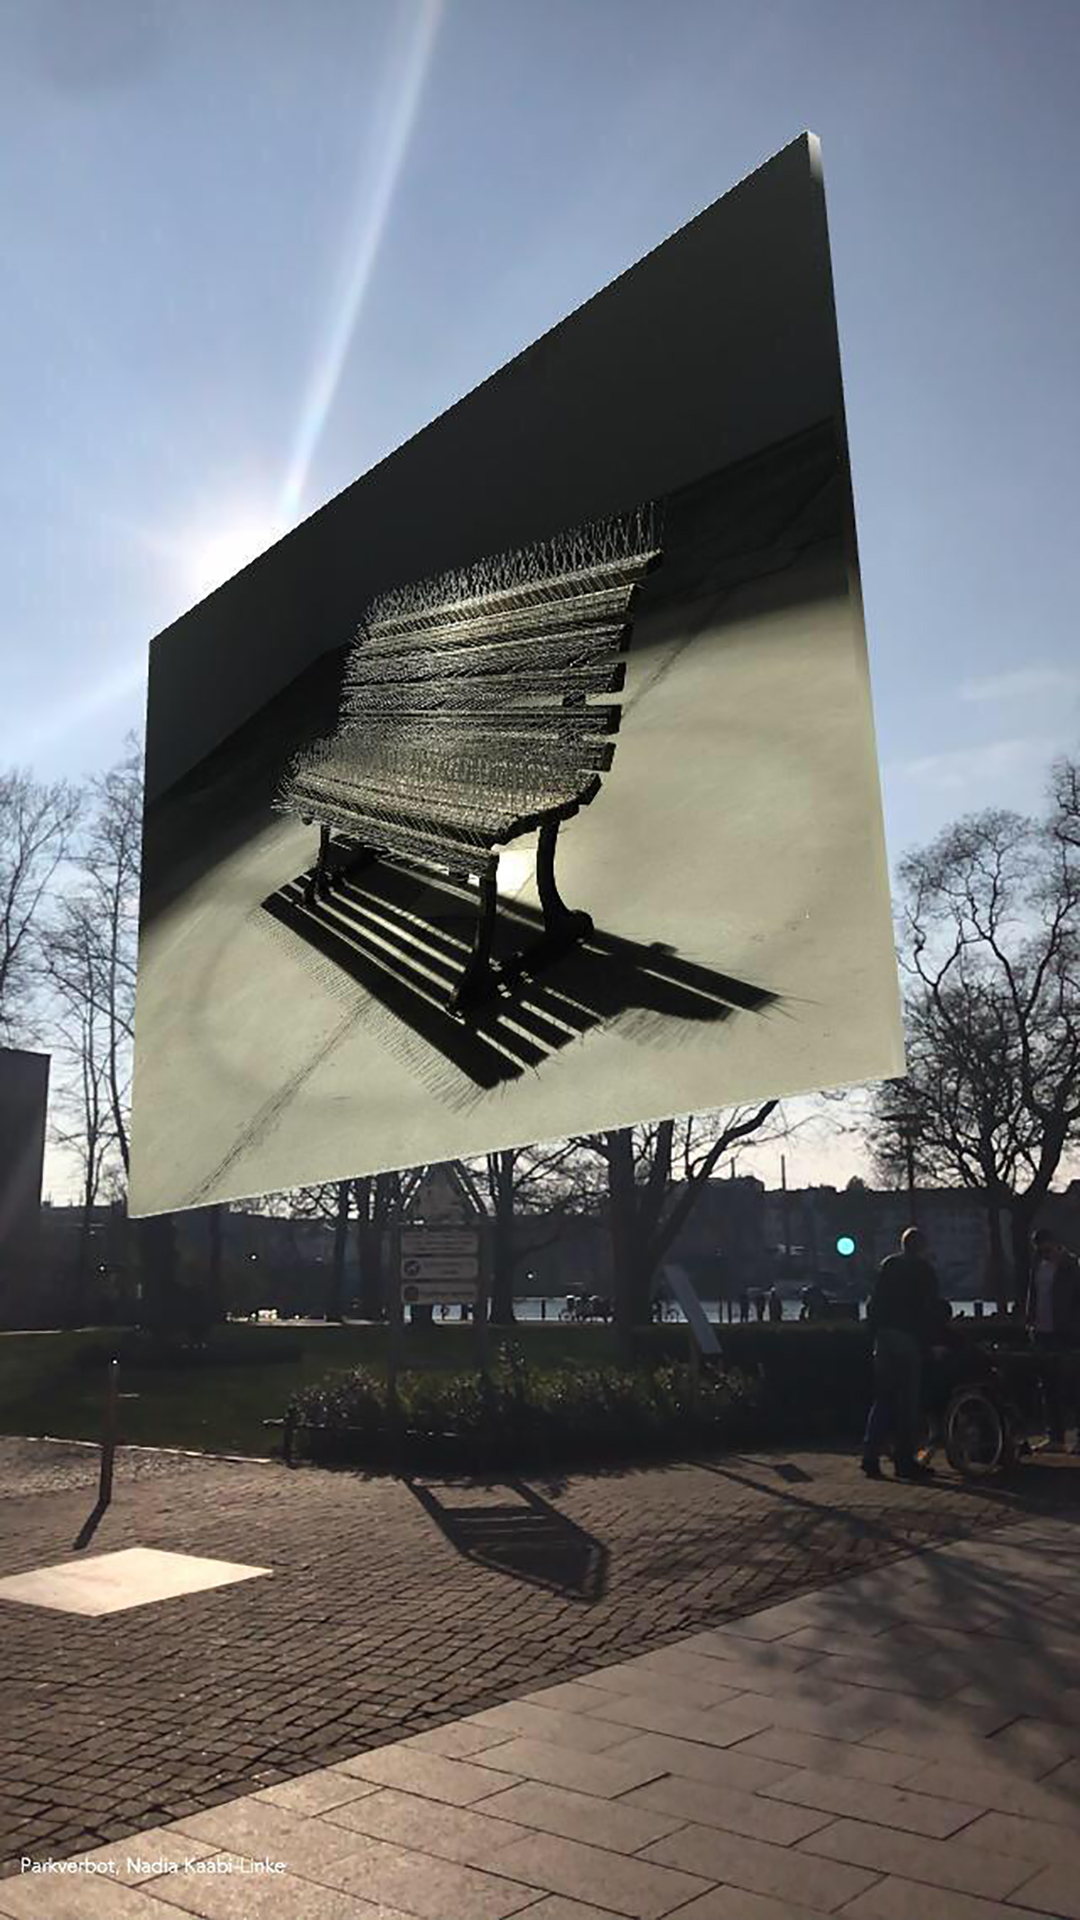 Nadia Kaabi-Linke, The Bench, 2019, Köpenicker Rathaus Berlin